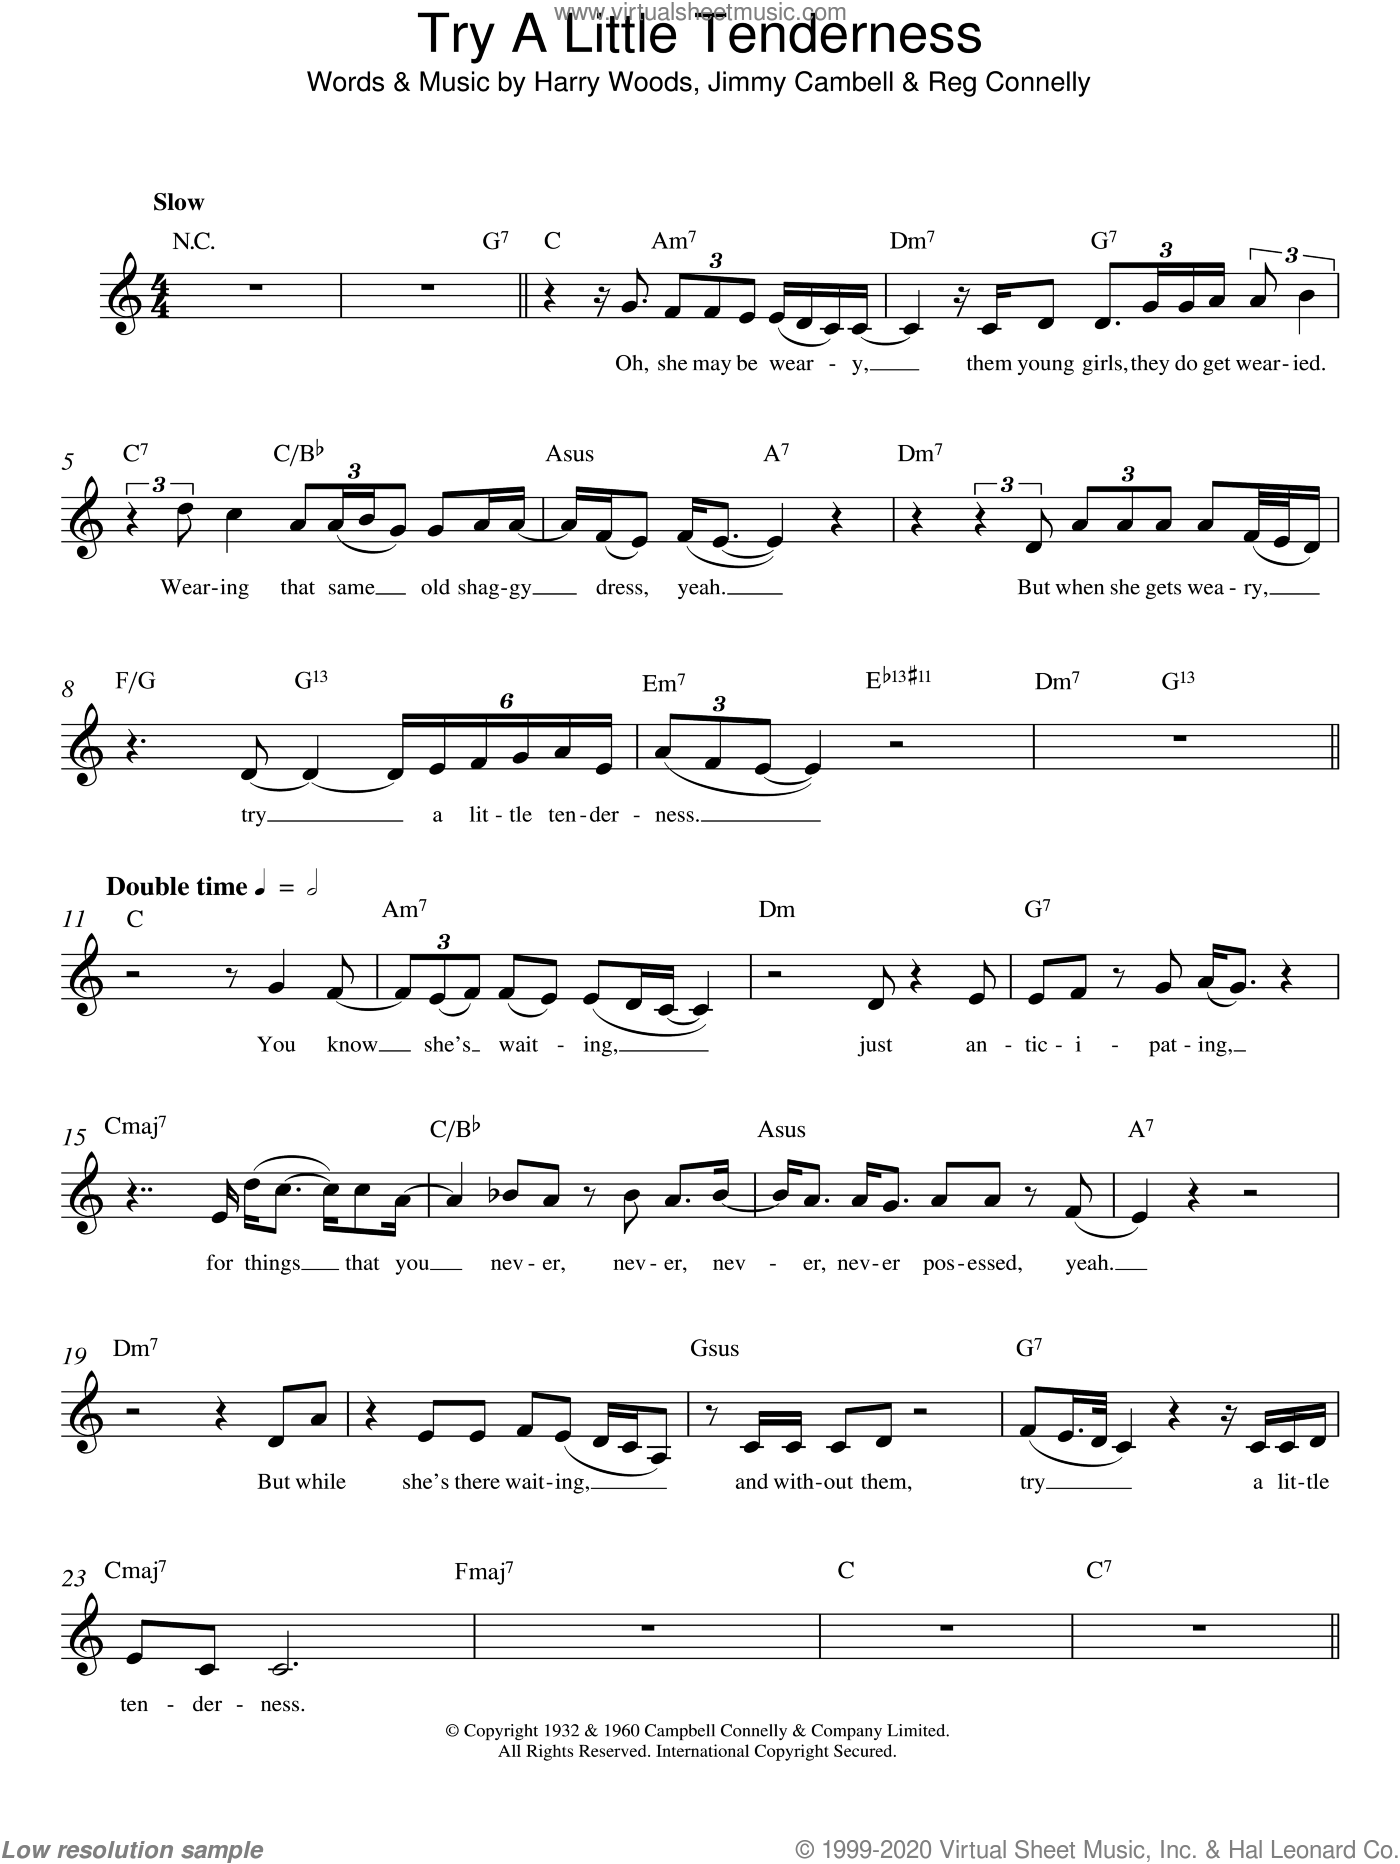 Try A Little Tenderness sheet music for voice and other instruments (fake book) by Reg Connelly